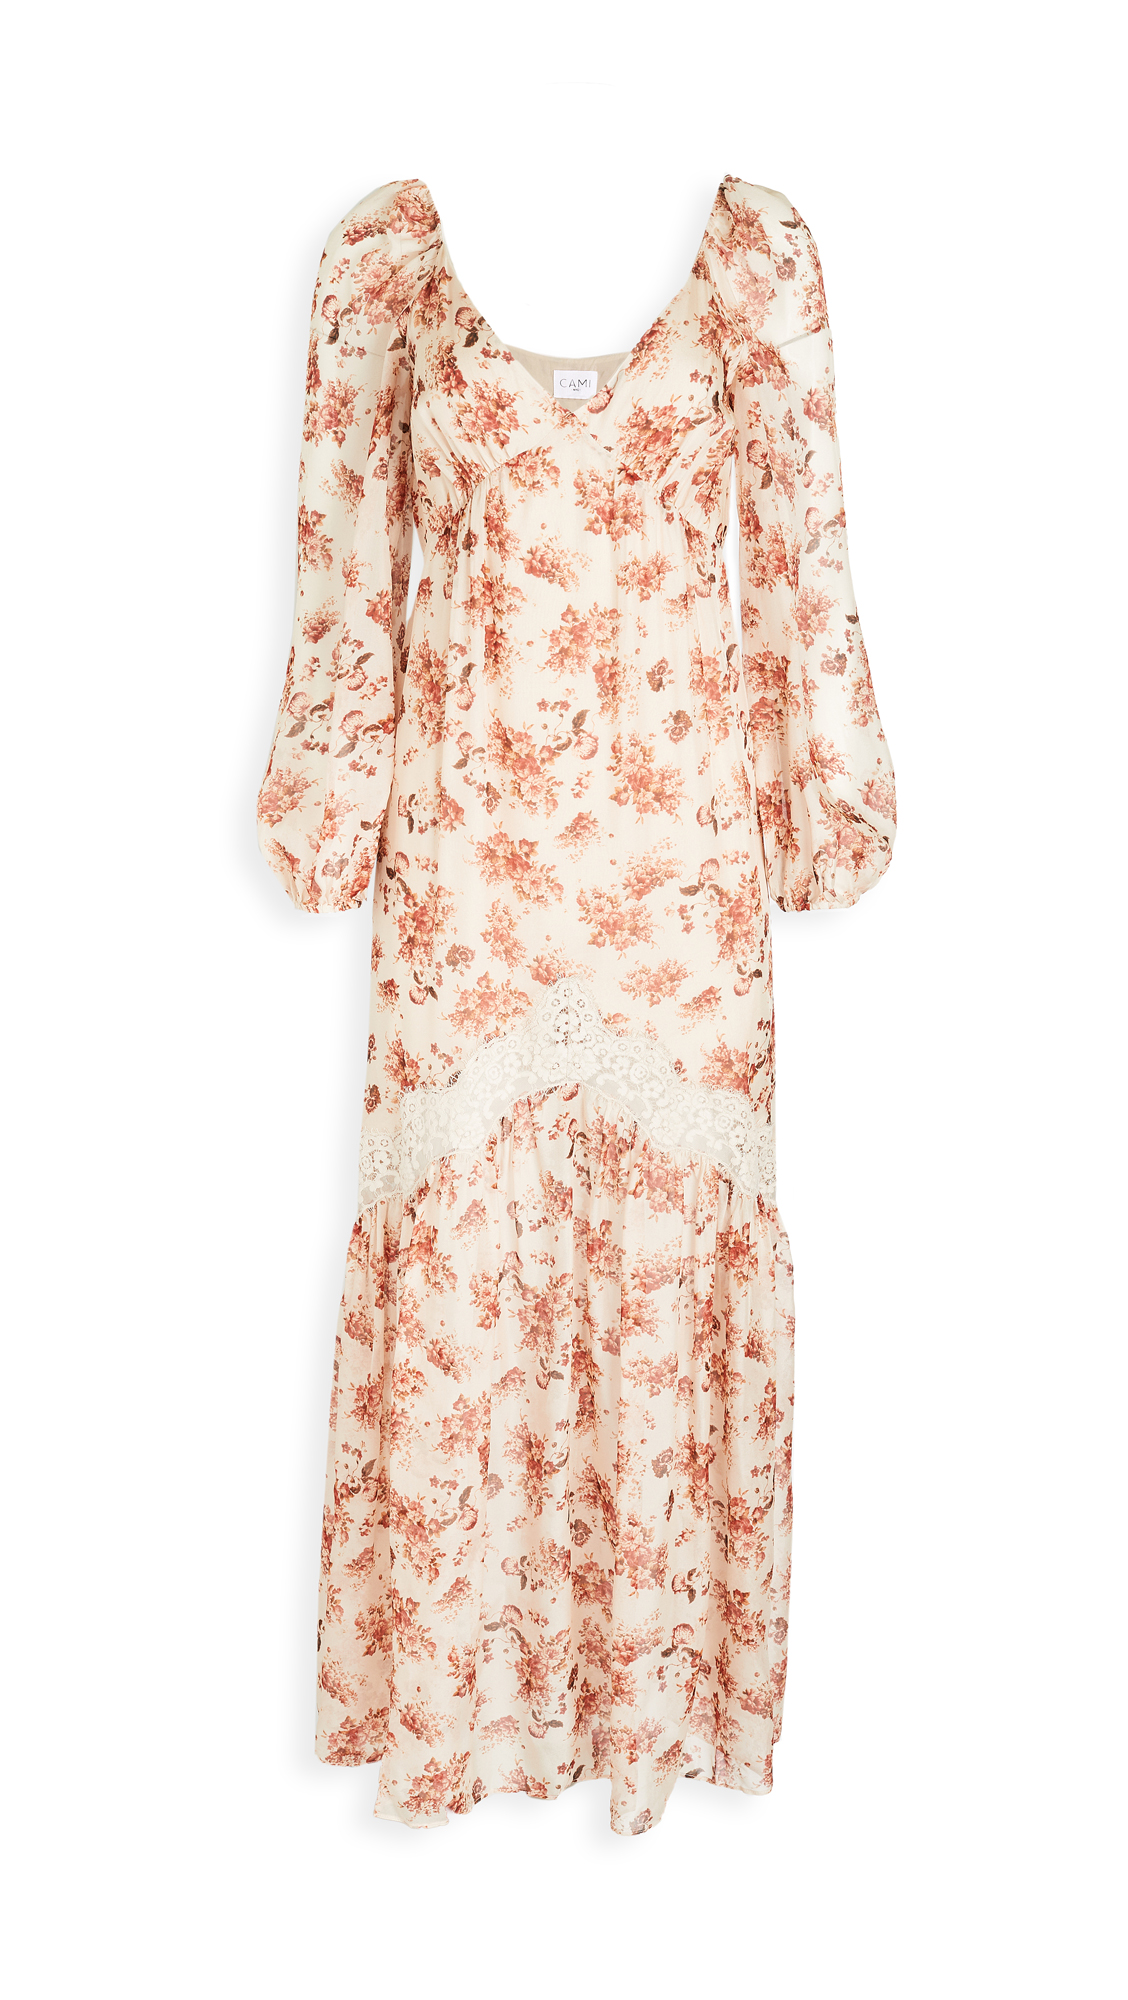 CAMI NYC The Francie Dress - 30% Off Sale